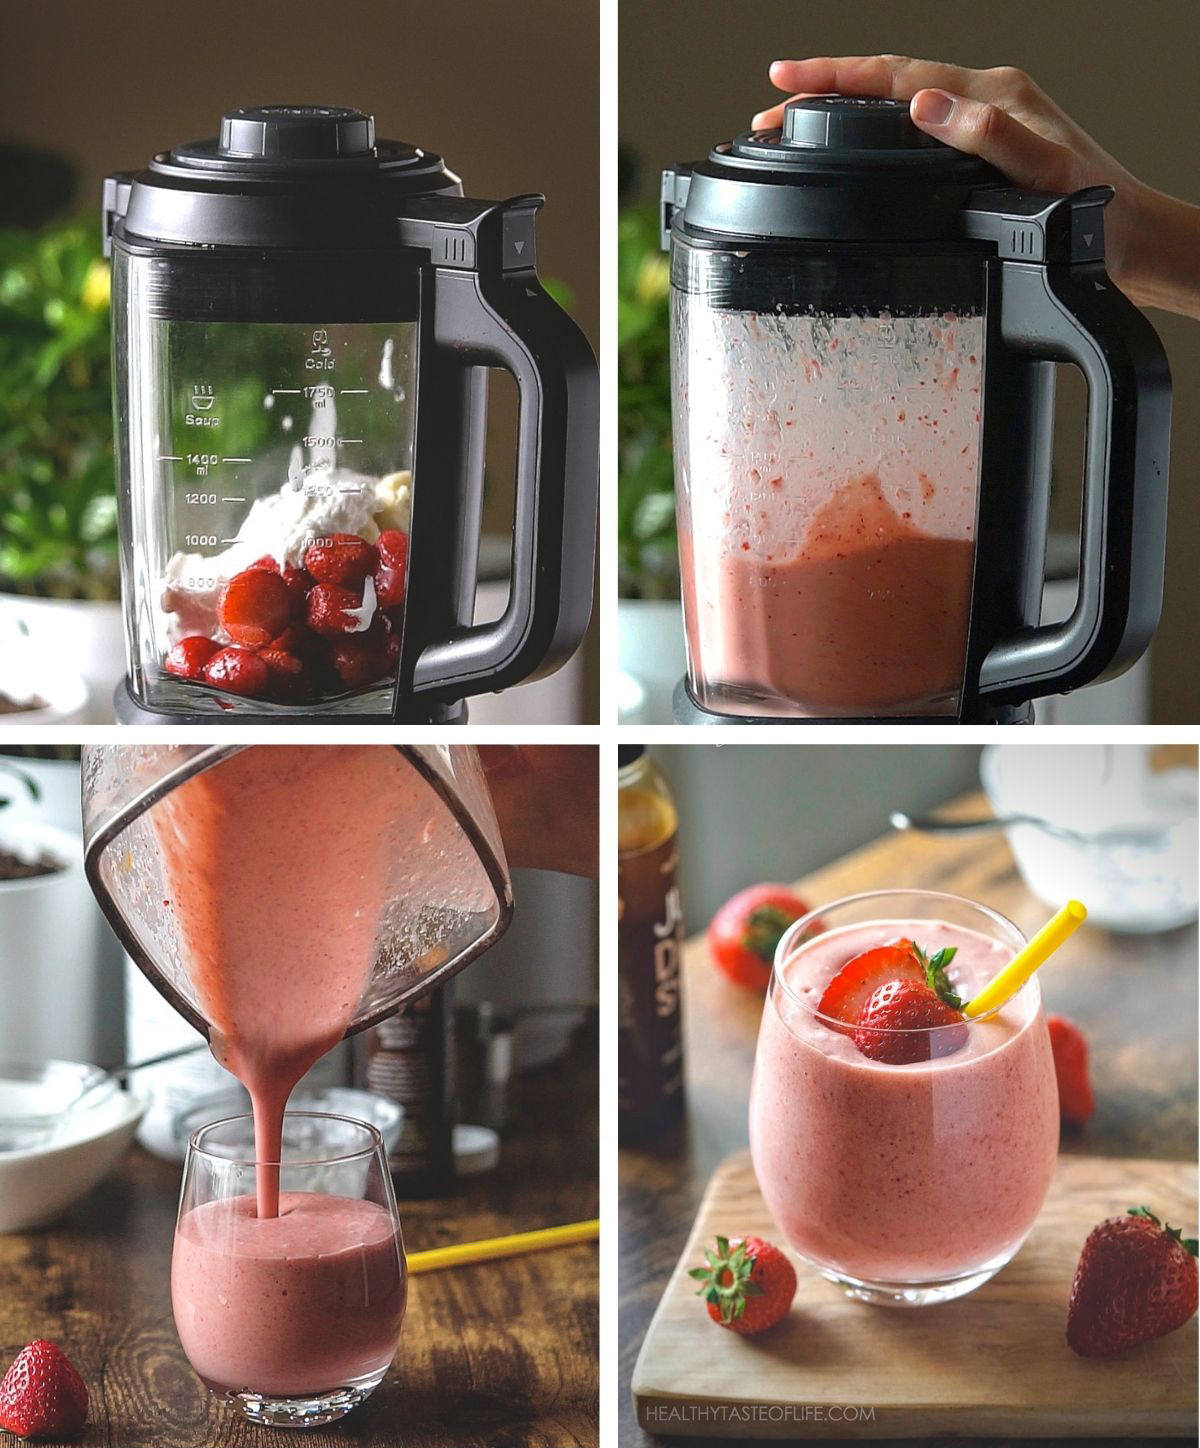 Collage of process shots step by step on how to make a dairy free strawberry banana milkshake.